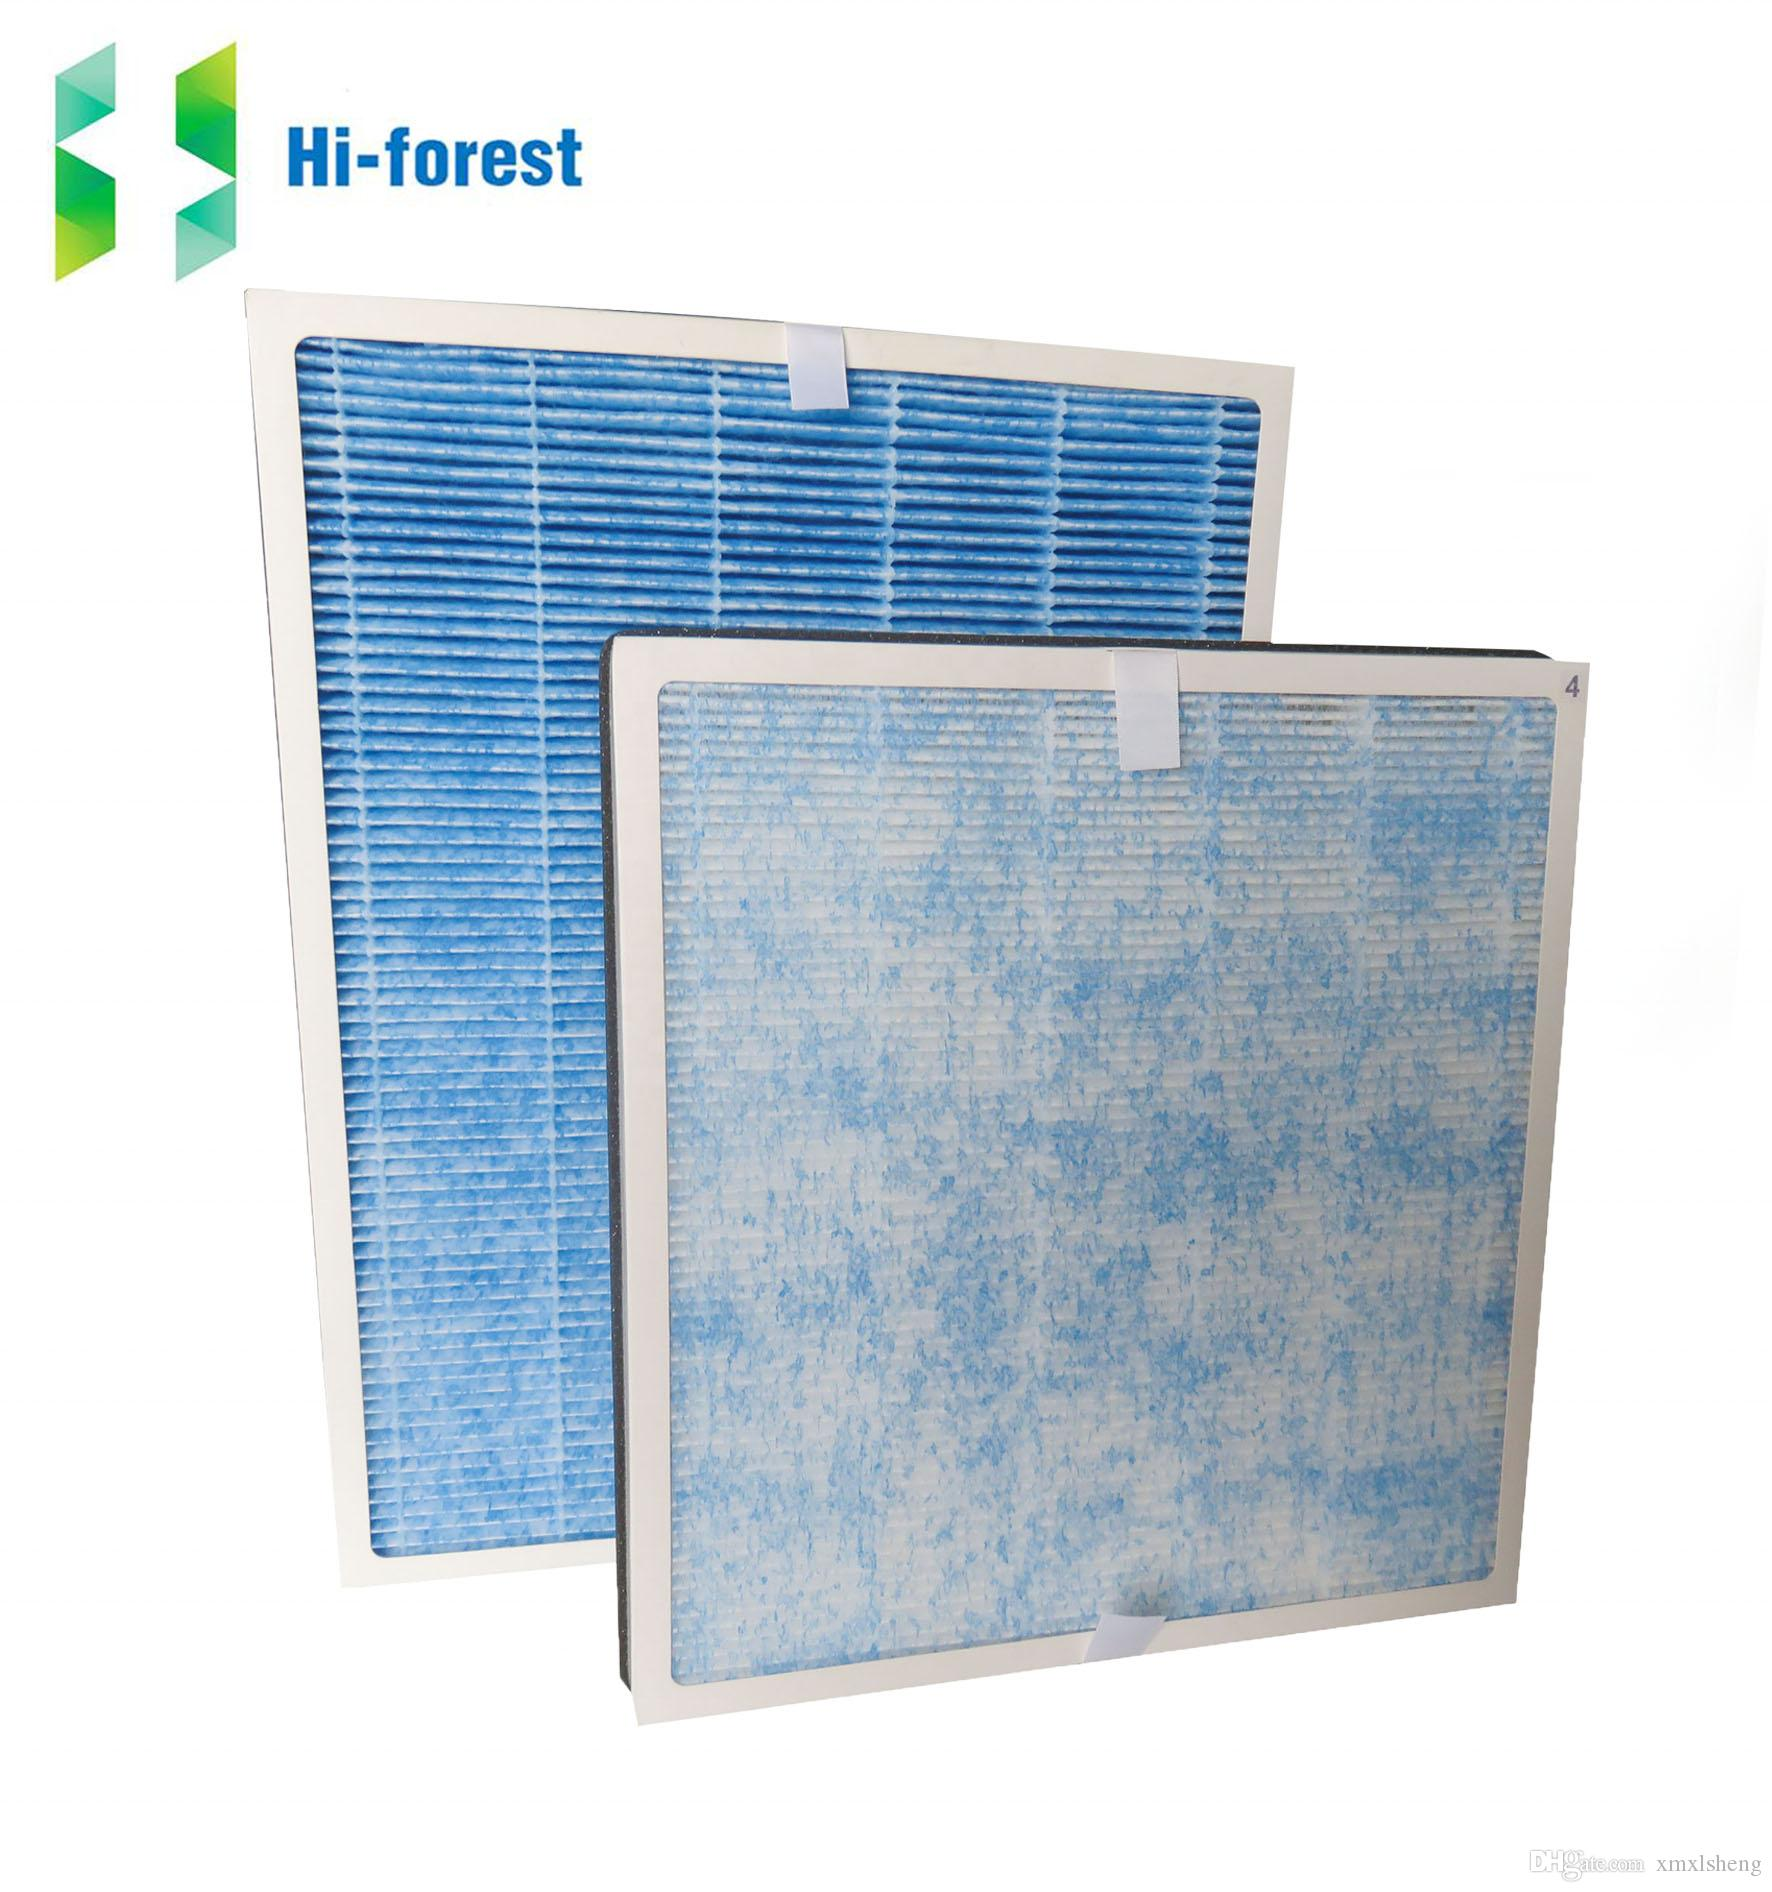 Hepa Ac Filter >> Medical Air Filter Net Home Dust Filter 0 3 Micron Hepa H10 Filter Air Conditioner Filters Net Dust Collector